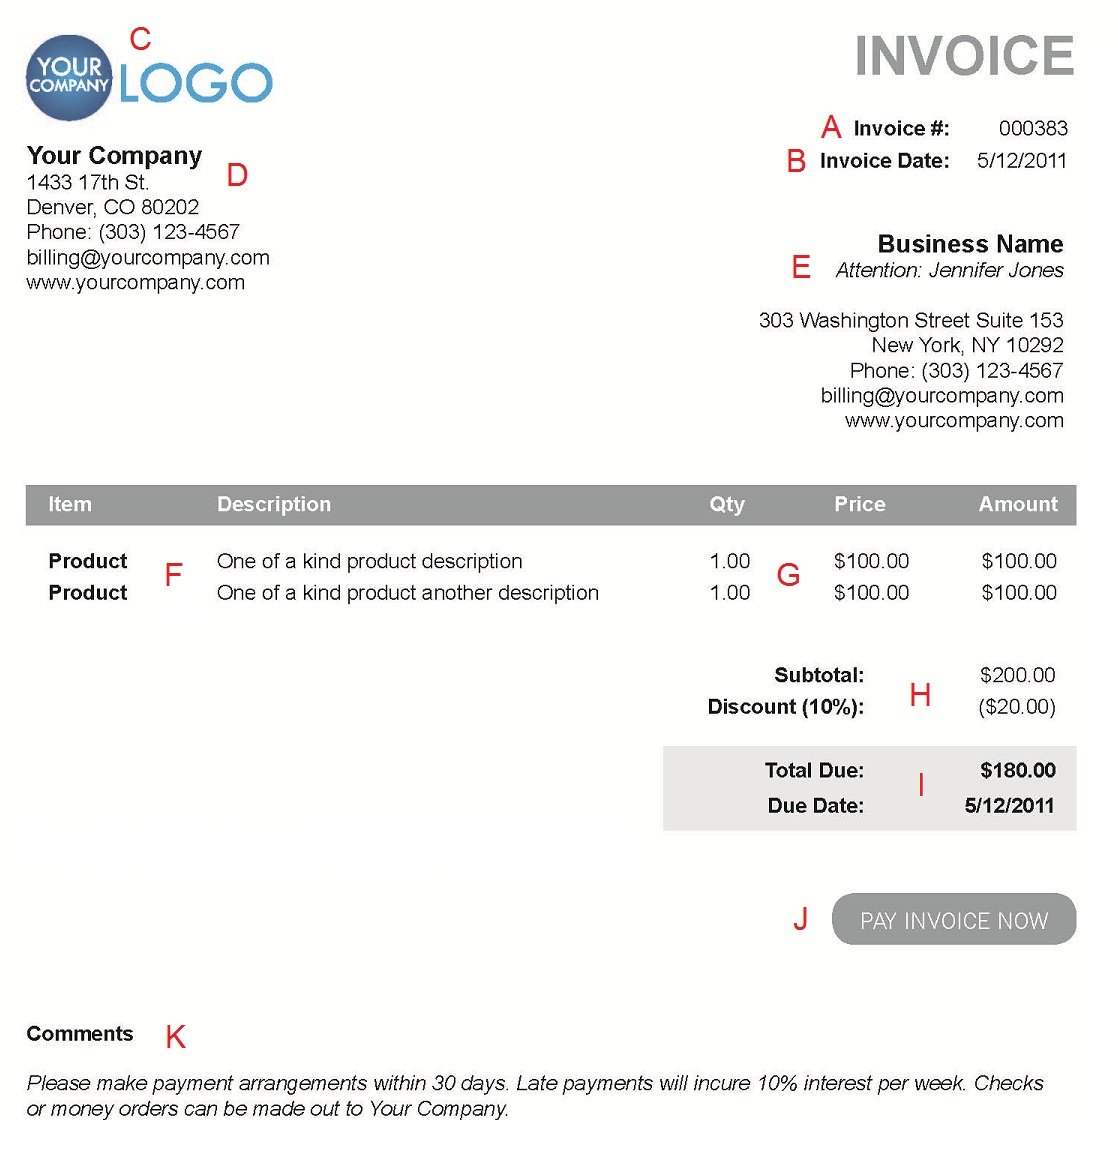 Atvingus  Scenic The  Different Sections Of An Electronic Payment Invoice With Licious A  With Charming Supplier Invoice Processing Also Sage Line  Invoice Template In Addition What To Write On An Invoice And Company Invoice Format As Well As Invoice Payment System Additionally Office  Invoice Template From Paysimplecom With Atvingus  Licious The  Different Sections Of An Electronic Payment Invoice With Charming A  And Scenic Supplier Invoice Processing Also Sage Line  Invoice Template In Addition What To Write On An Invoice From Paysimplecom